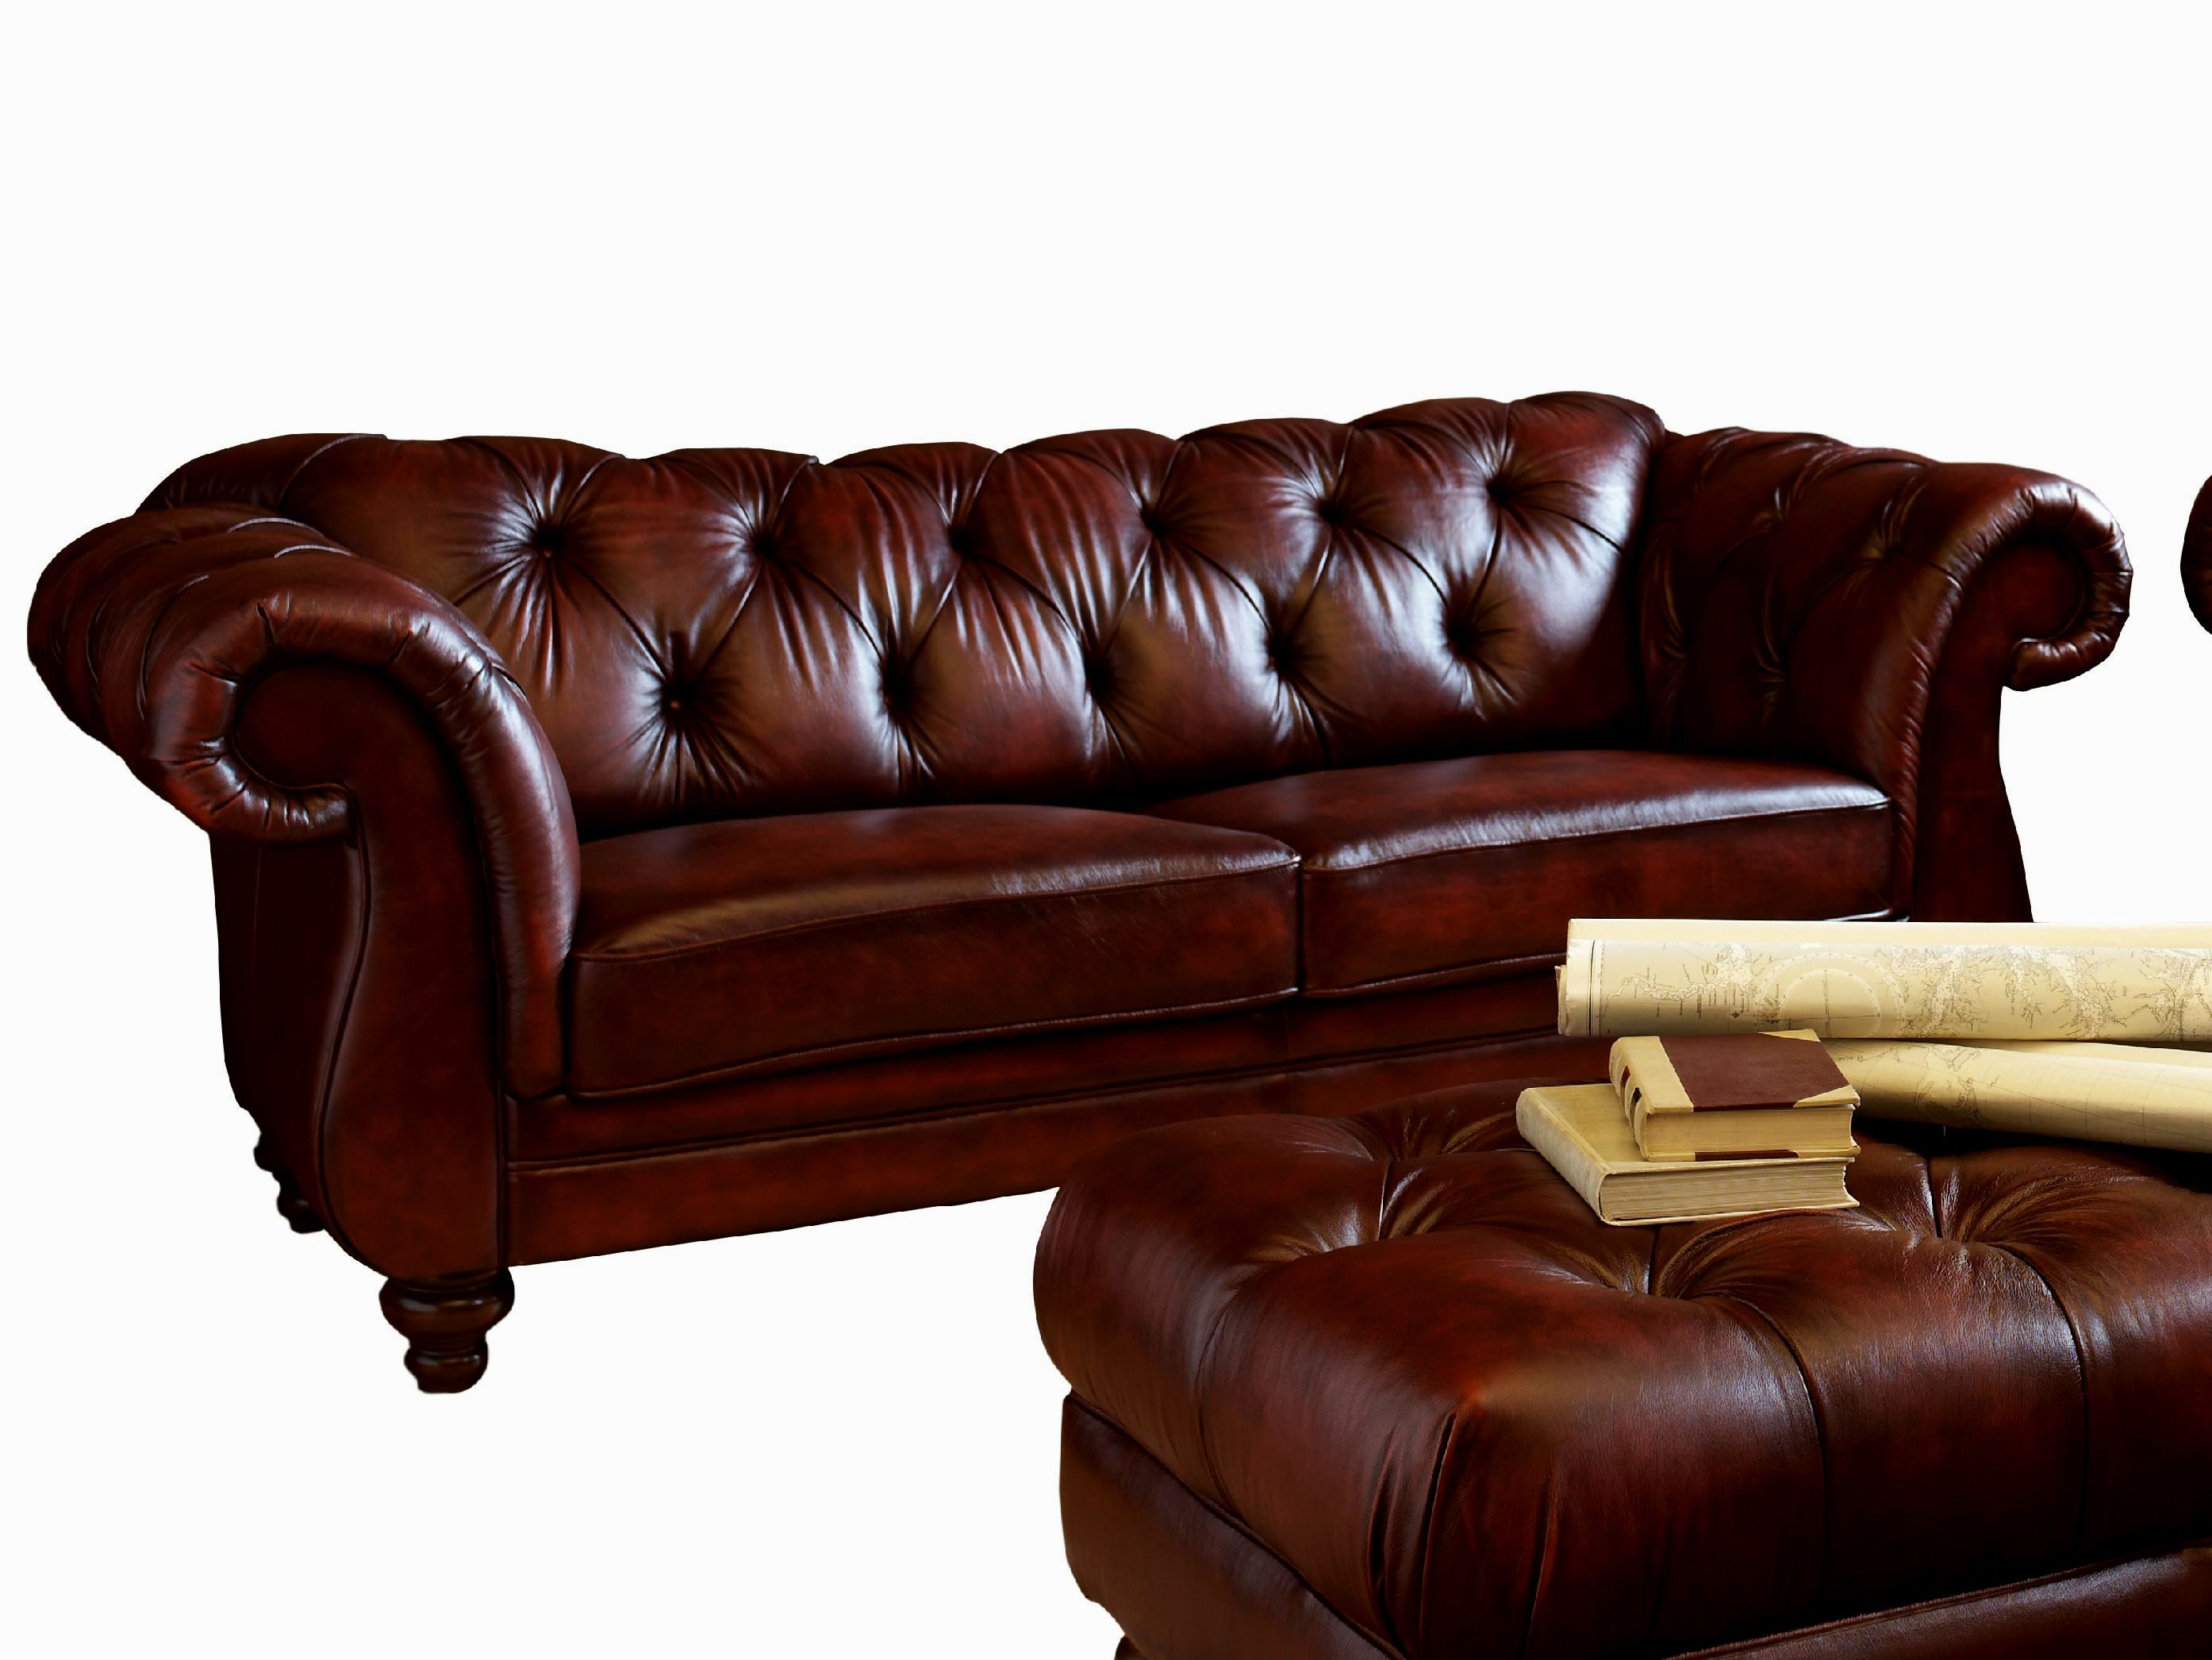 top leather sofa macys image-New Leather sofa Macys Gallery